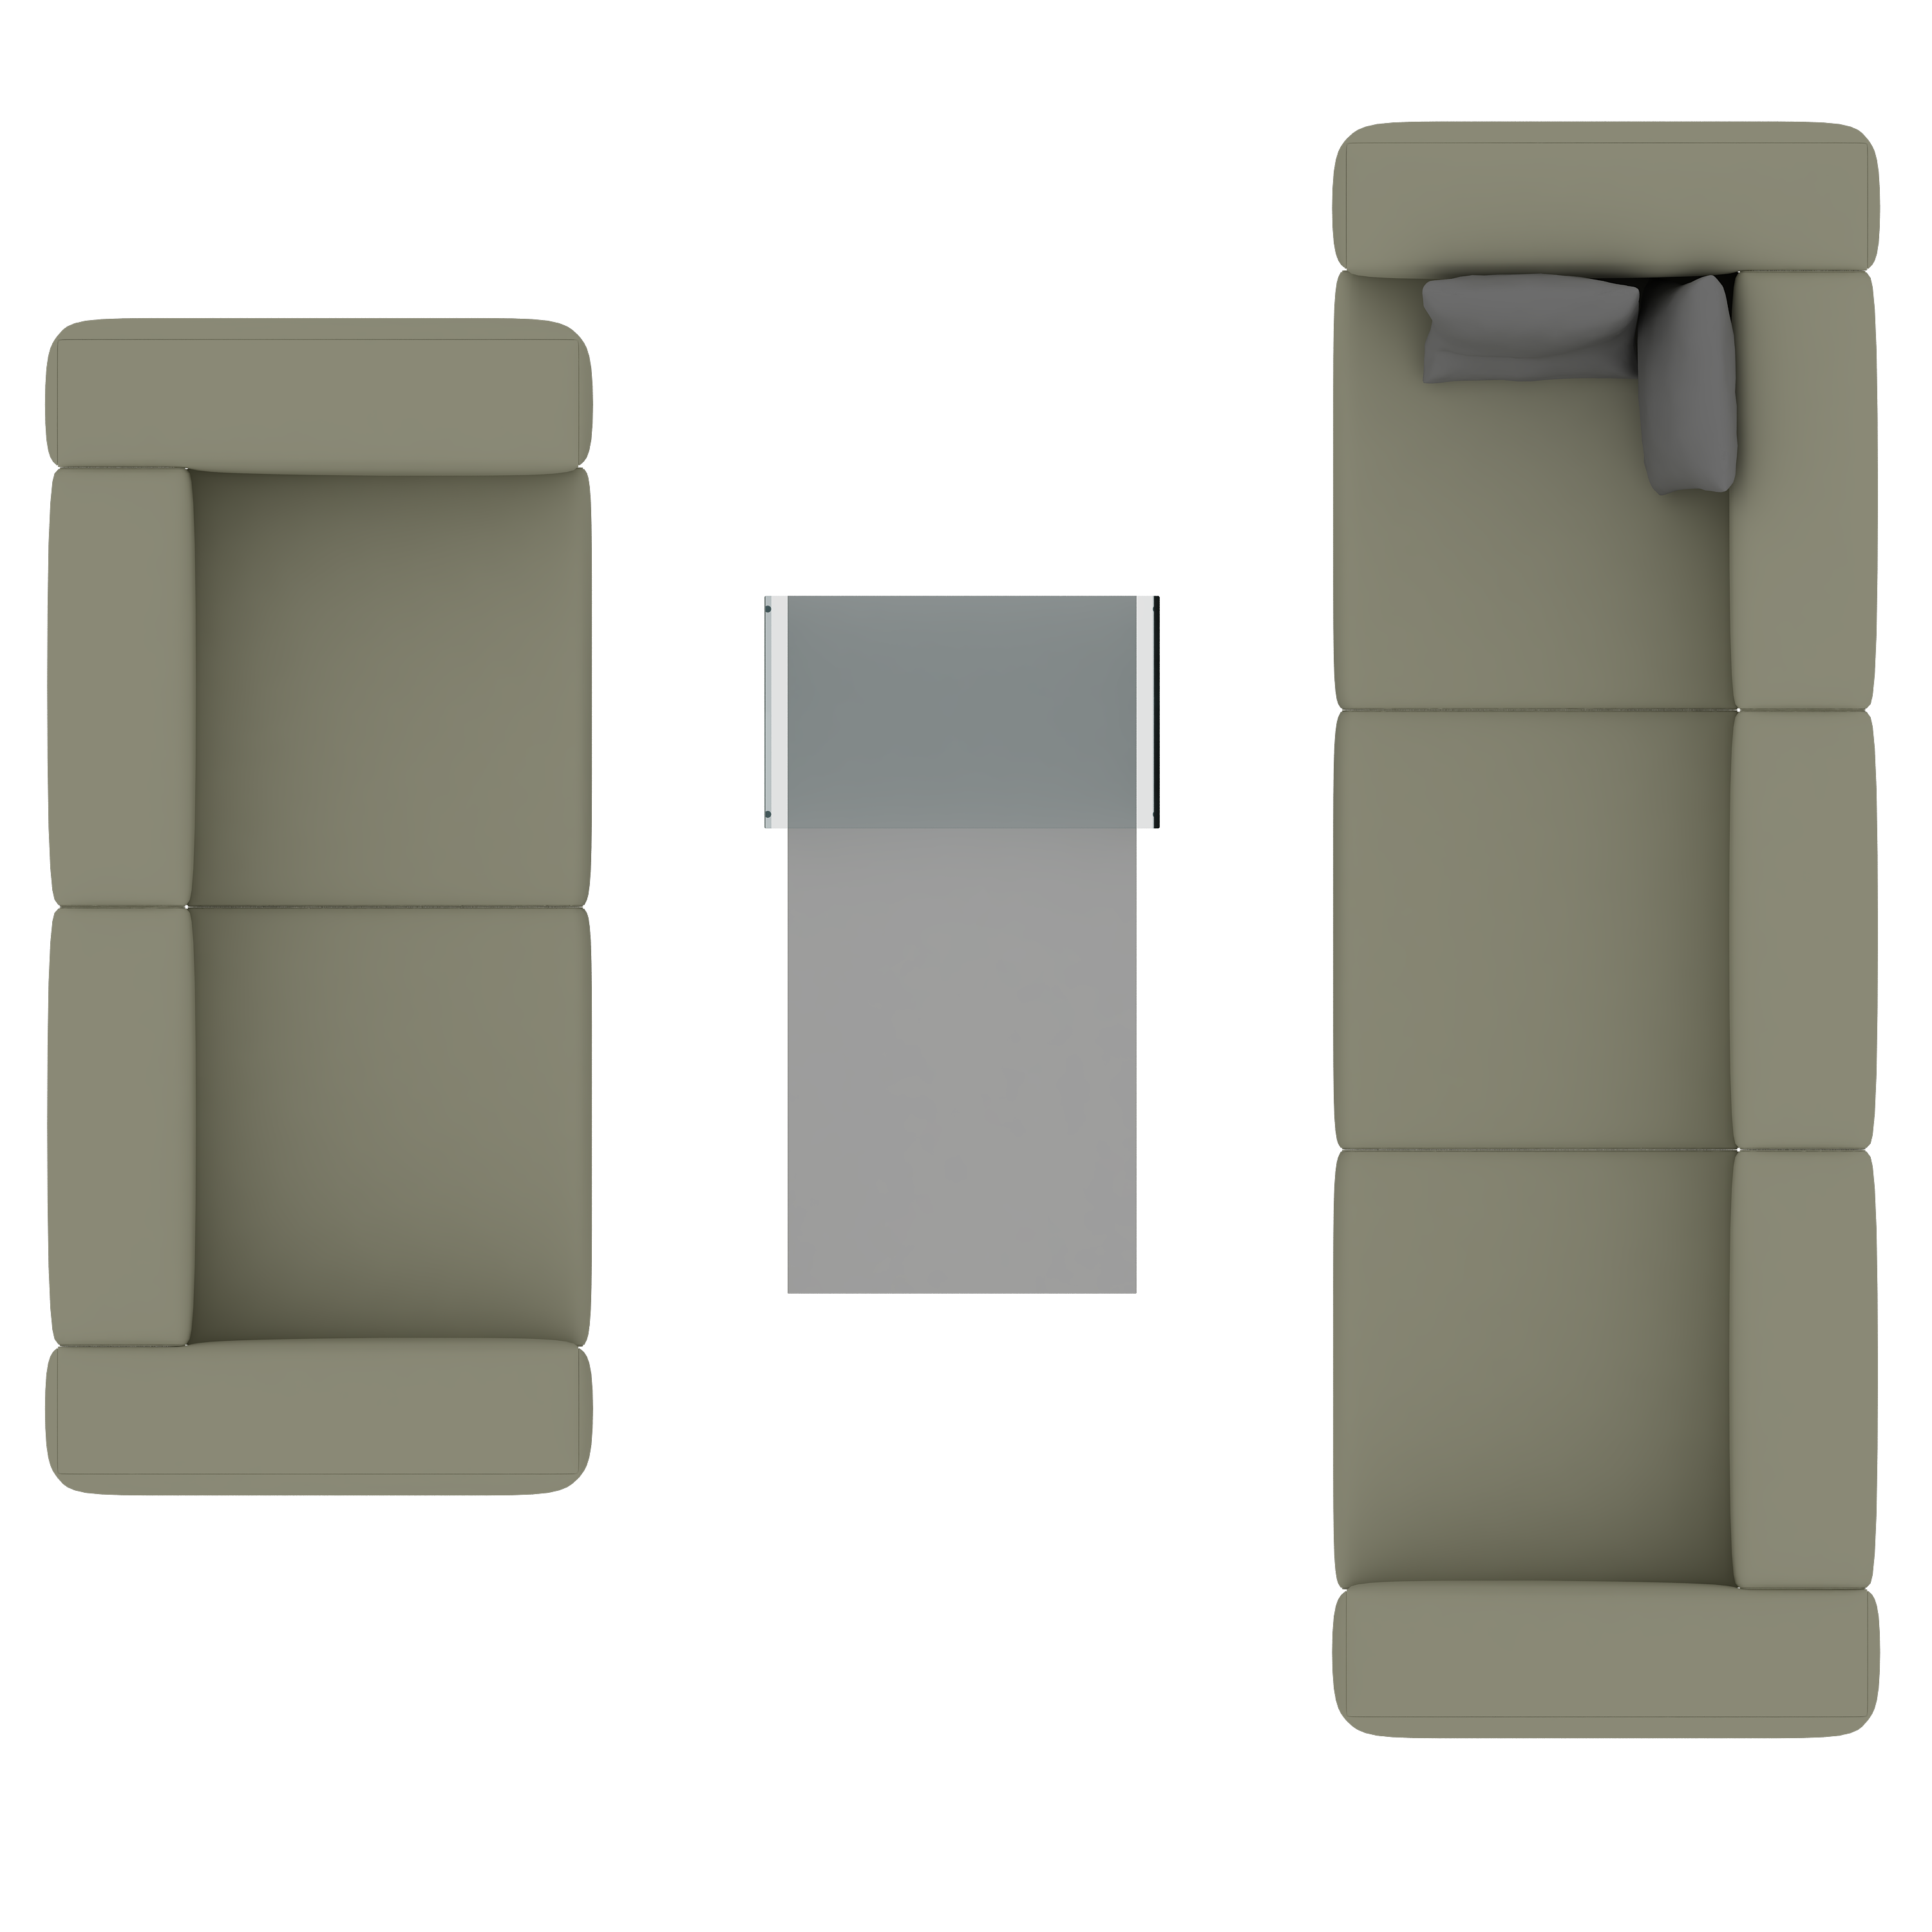 Couch clipart top view. Free on dumielauxepices net